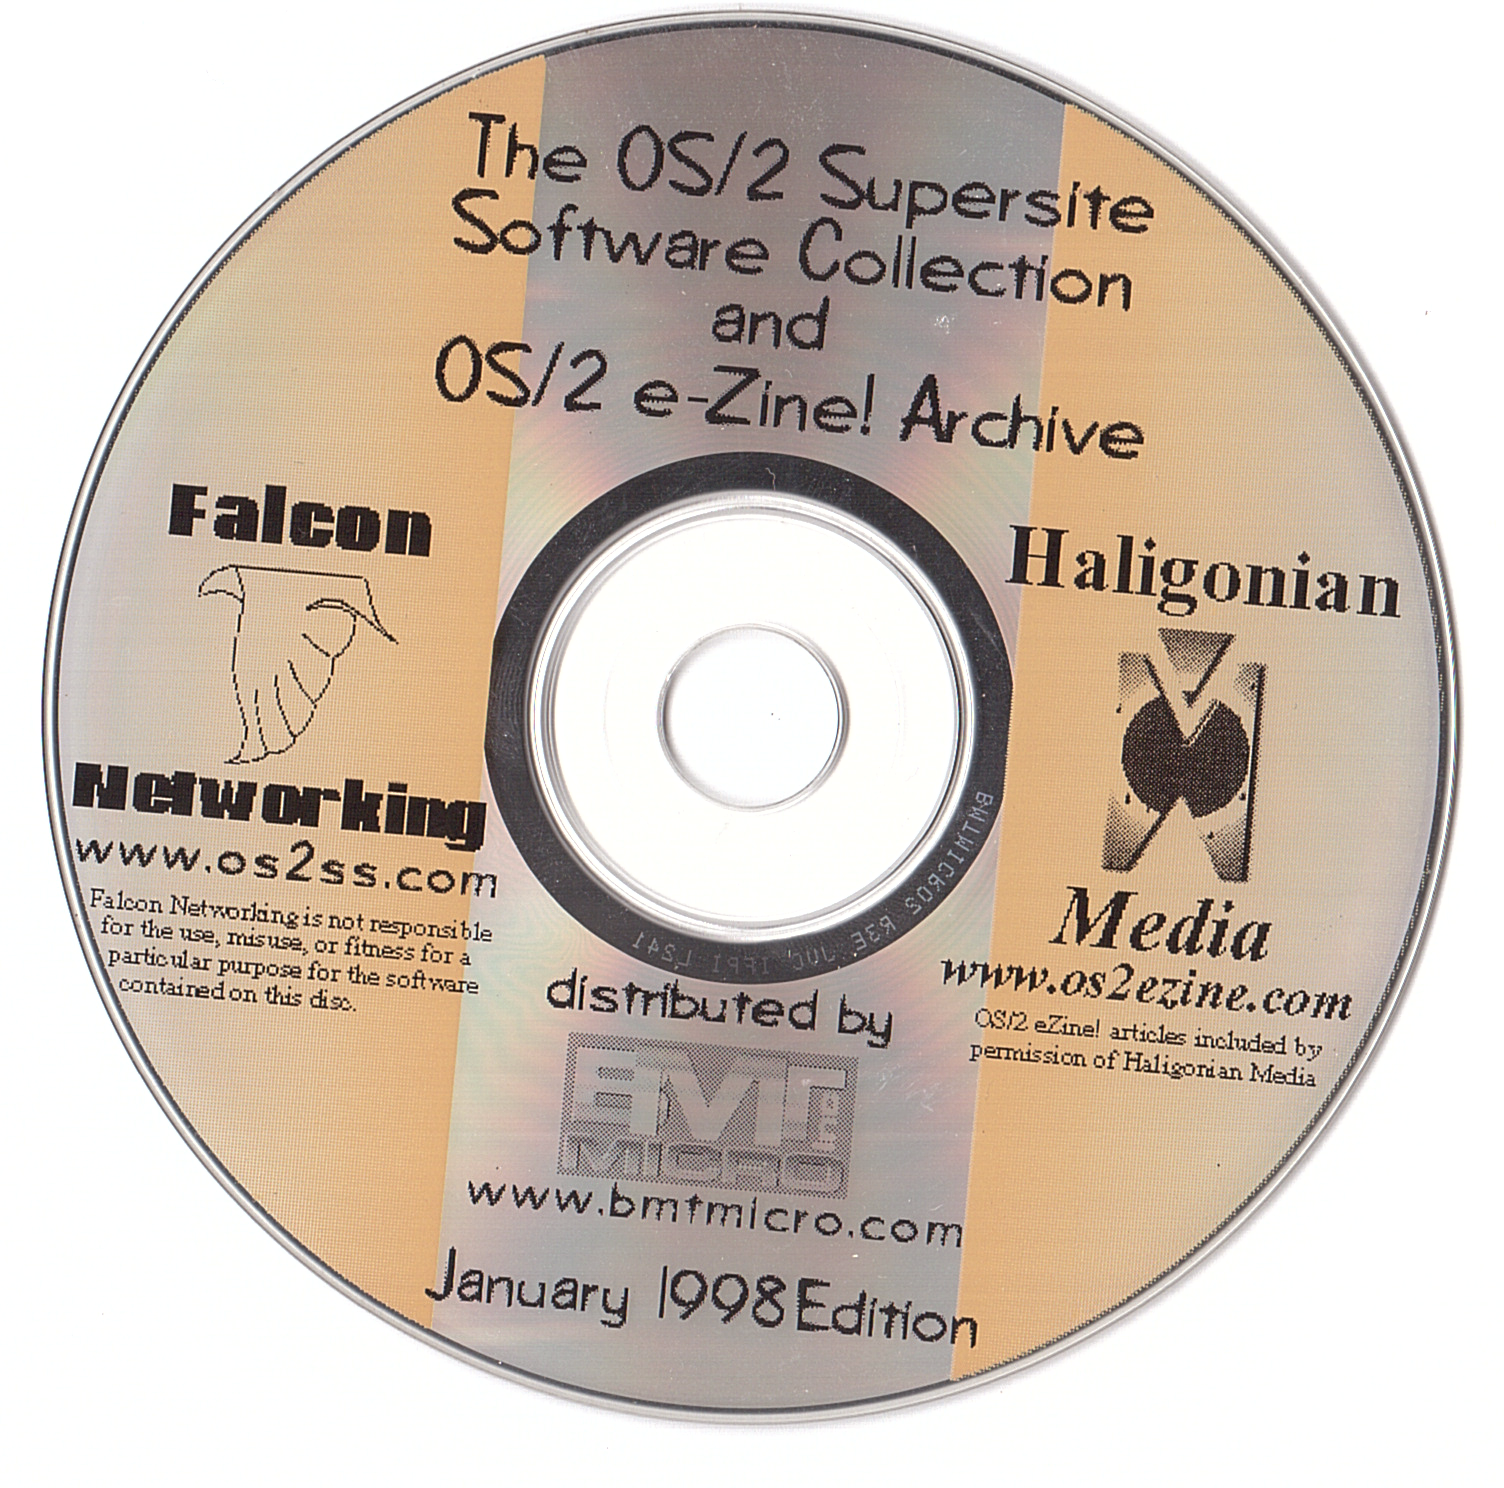 Supersite-CD.png